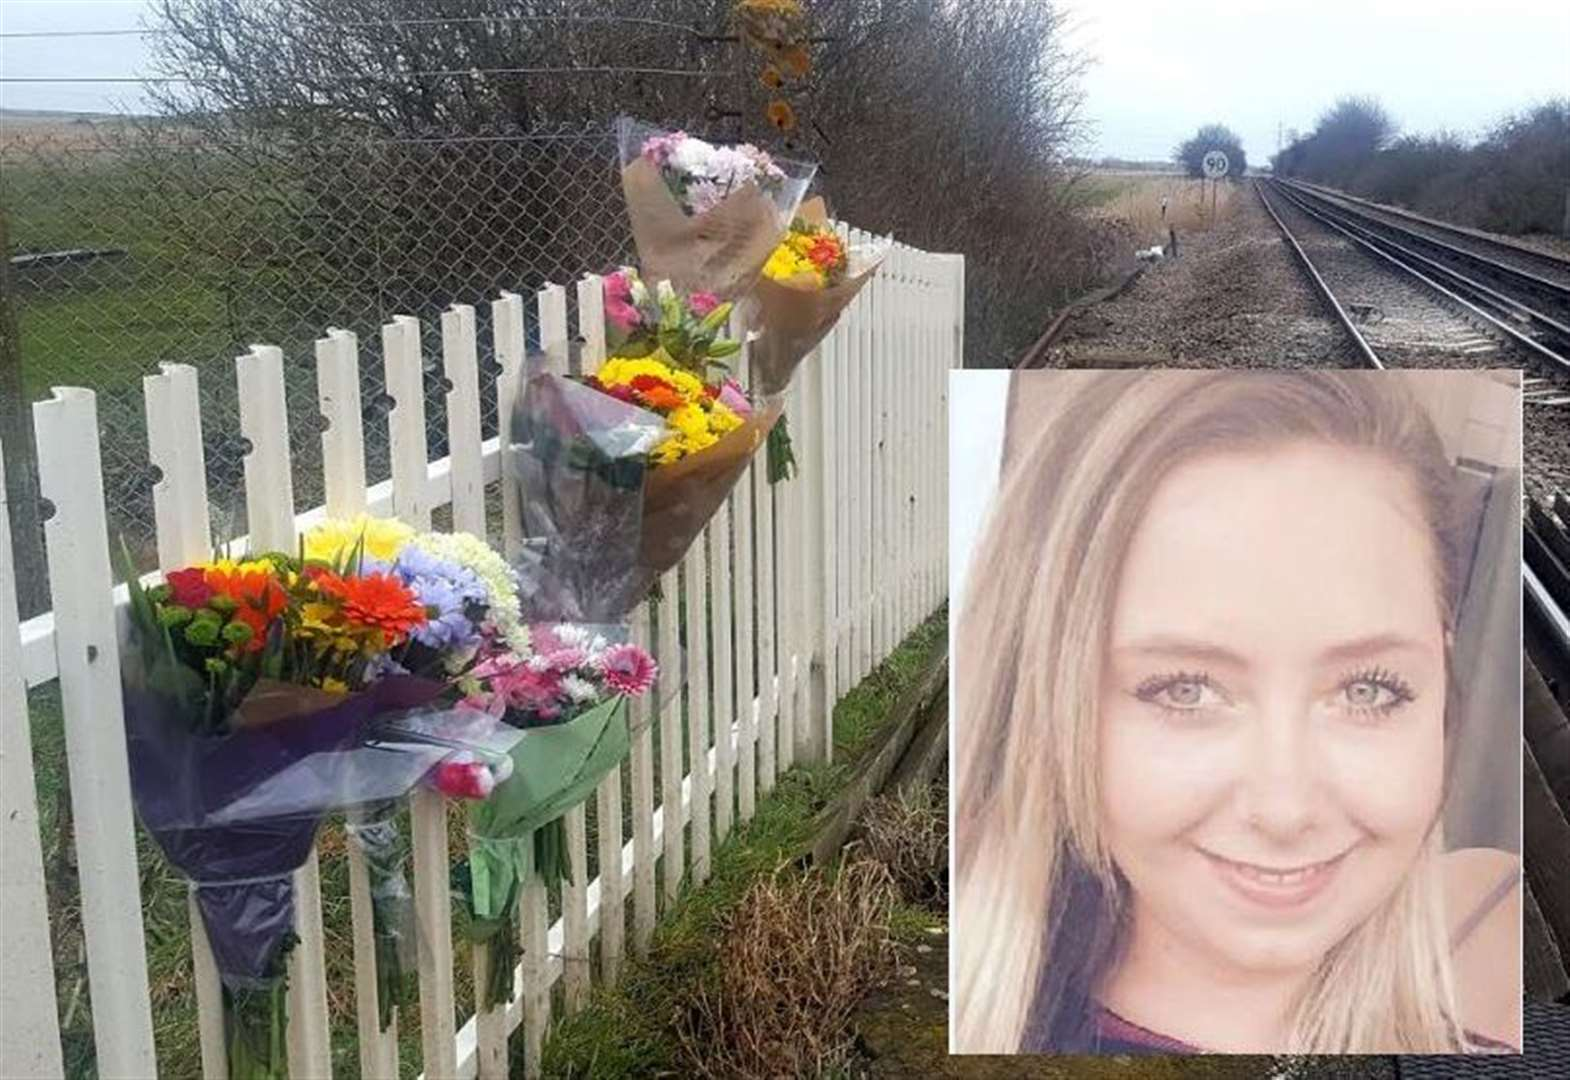 Train driver saw woman hours before tragic death on railway line